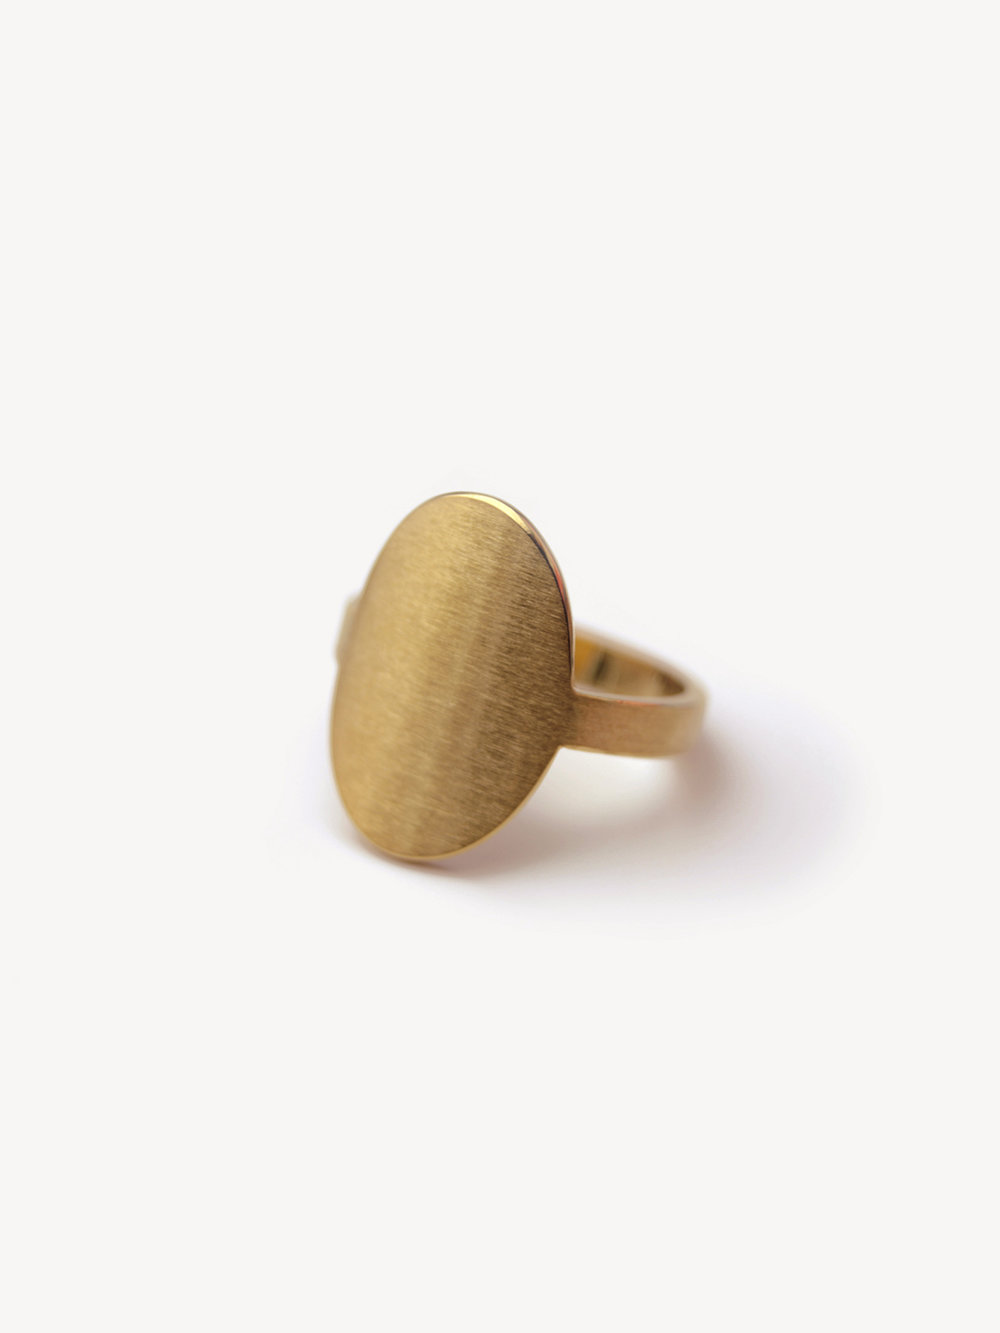 Siegelring Anda, hochoval Klein in 585 Gold  Signet ring Anda, vertical oval small in 14kt gold